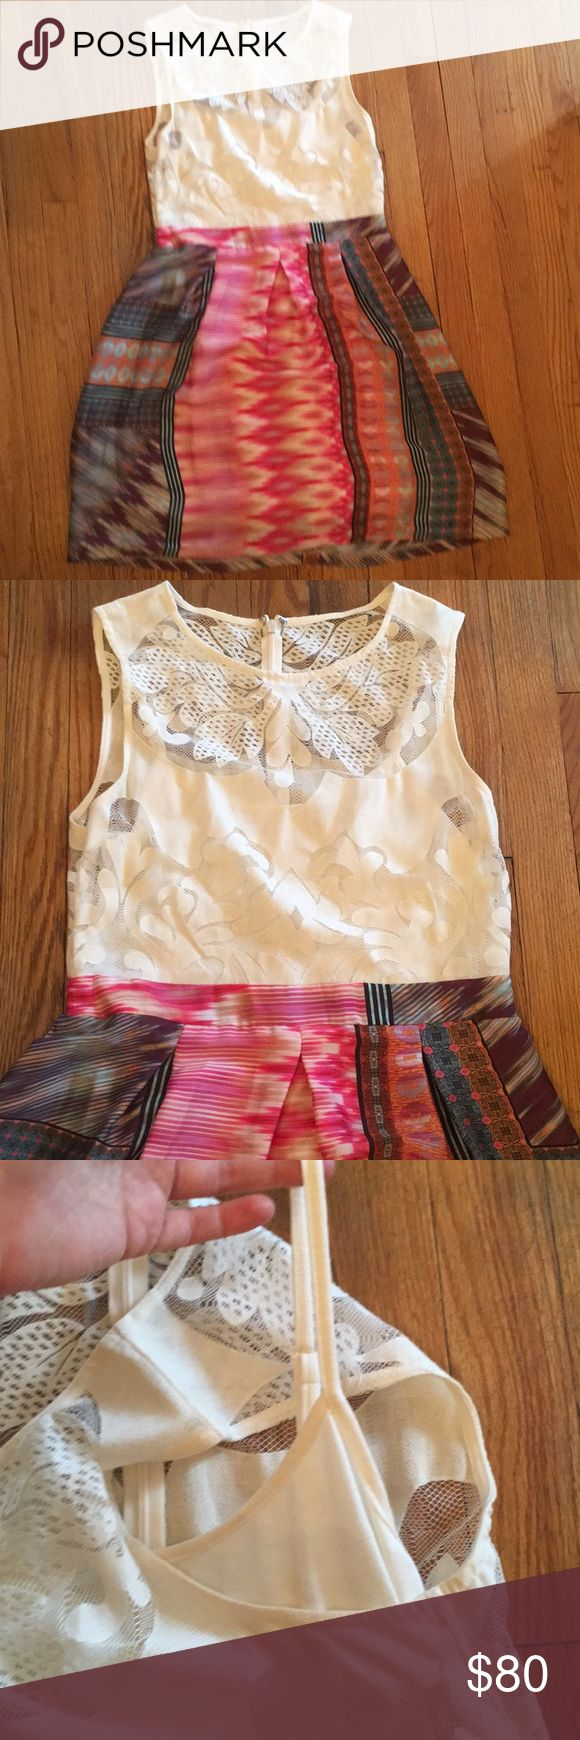 Anthropolgie multicolor summer dress Worn only once! This dress is really beautiful and flattering. Patterned silk skirt with attached ivory lace sleeveless top and cotton cami underneath. The brand is Weston. Tag says 10 but I think it fits smaller. Anthropologie Dresses Midi